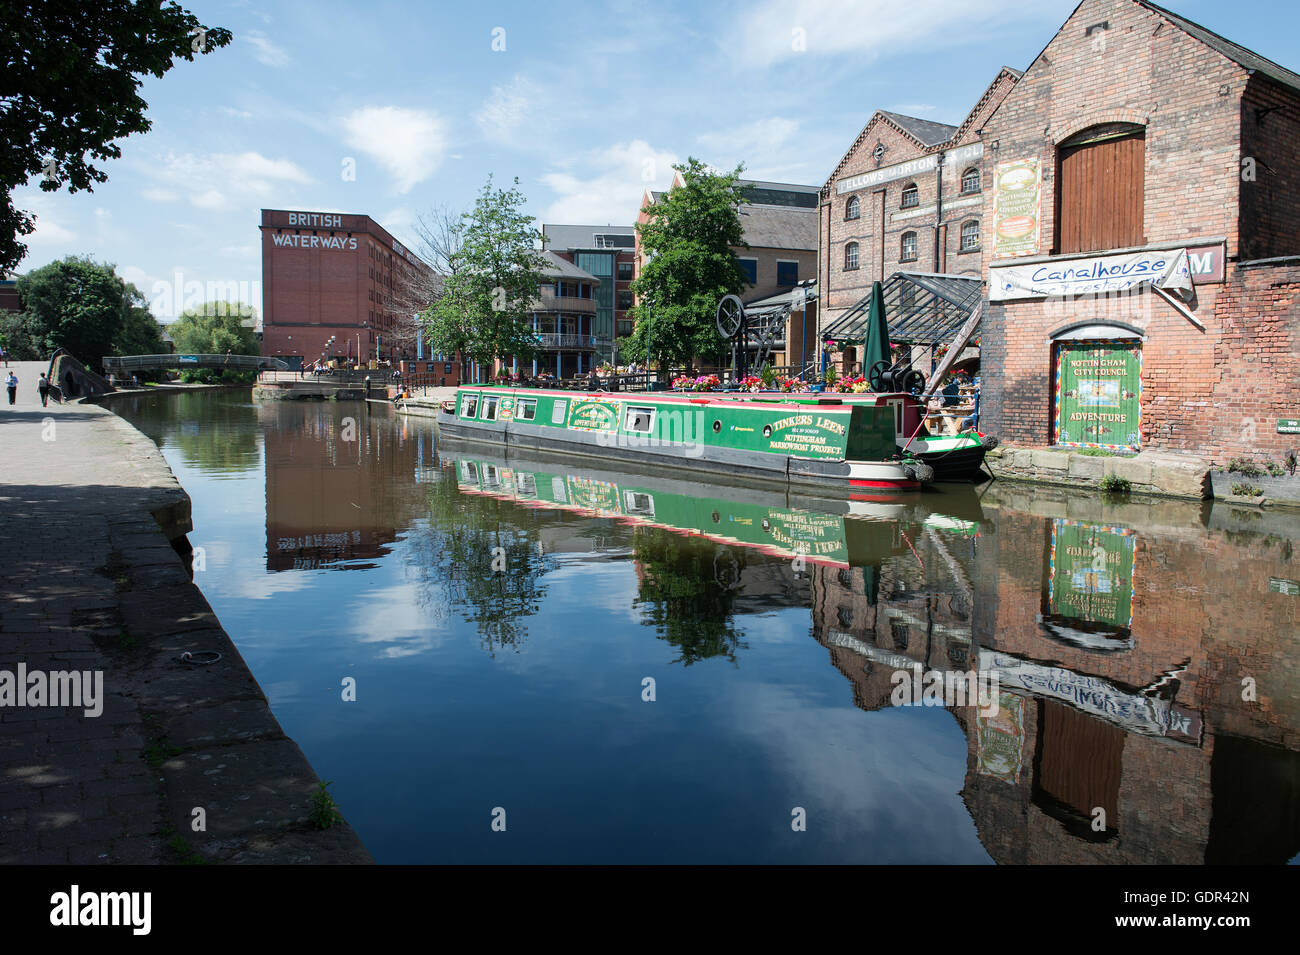 Narrowboat on the Nottingham Canal moored at Castle Wharf with British Waterways building in the background - Stock Image